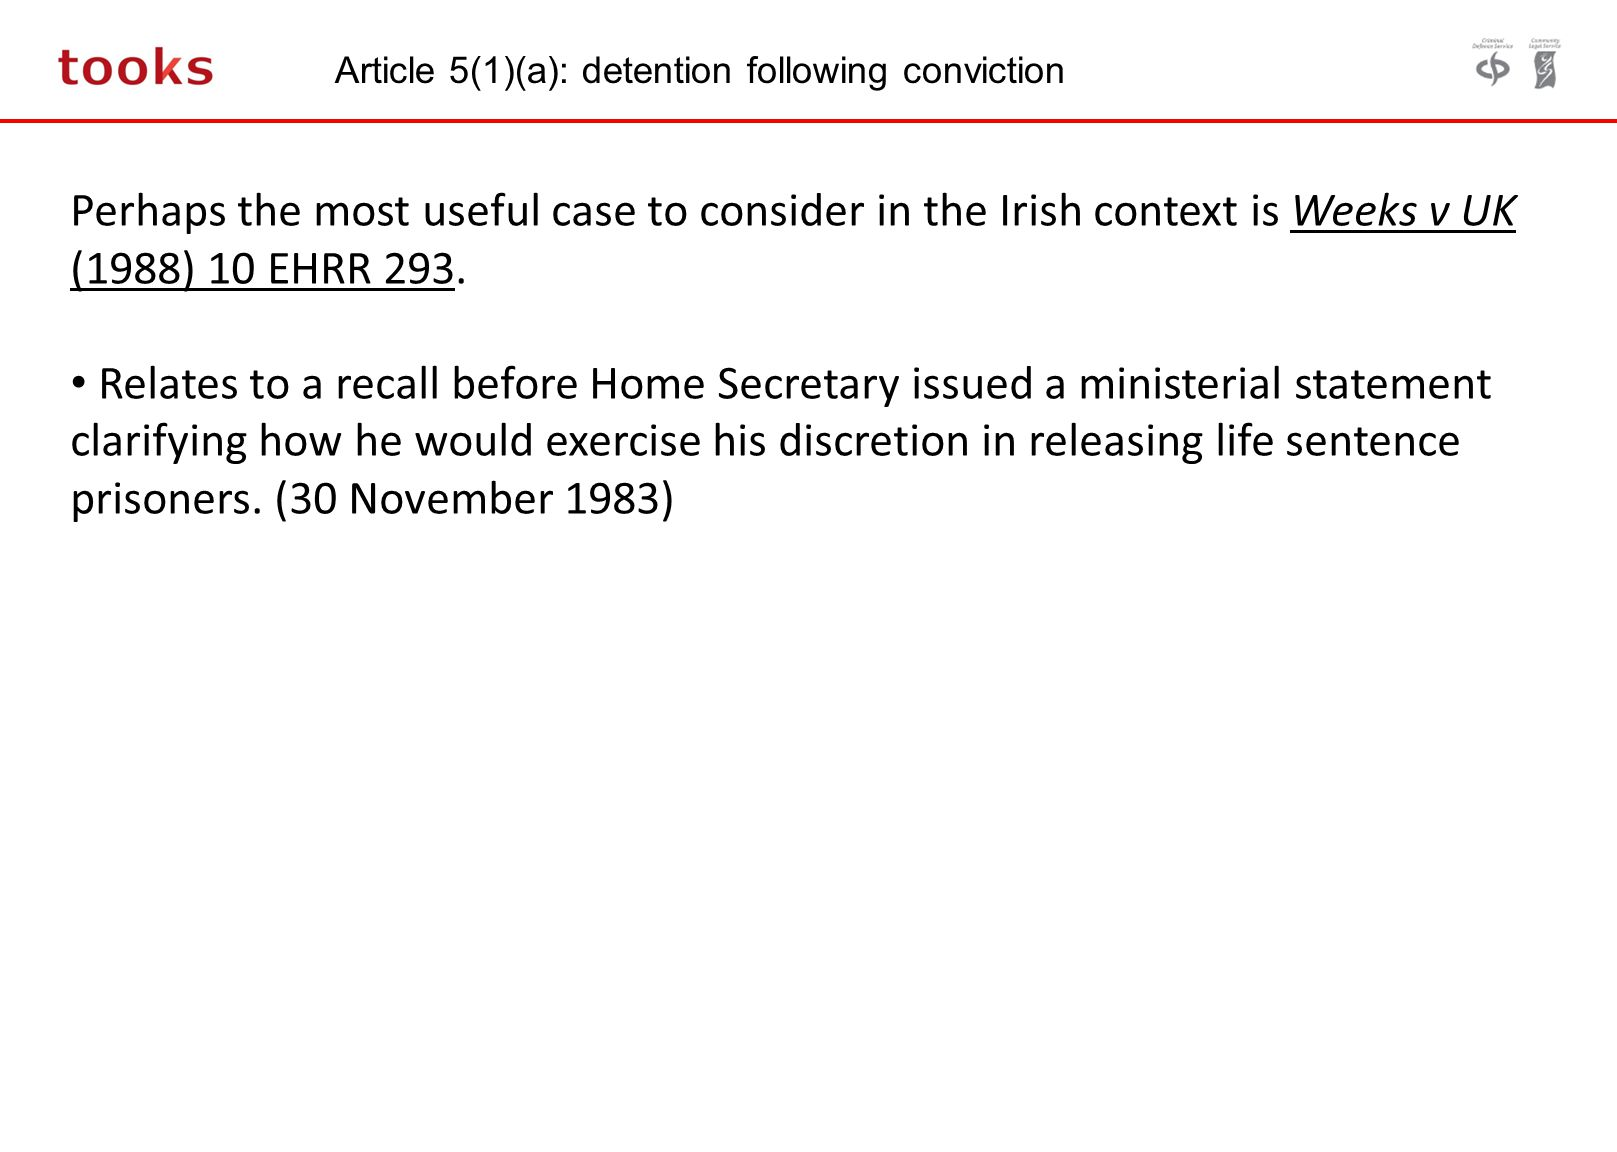 Article 5(1)(a): detention following conviction Perhaps the most useful case to consider in the Irish context is Weeks v UK (1988) 10 EHRR 293. Relate